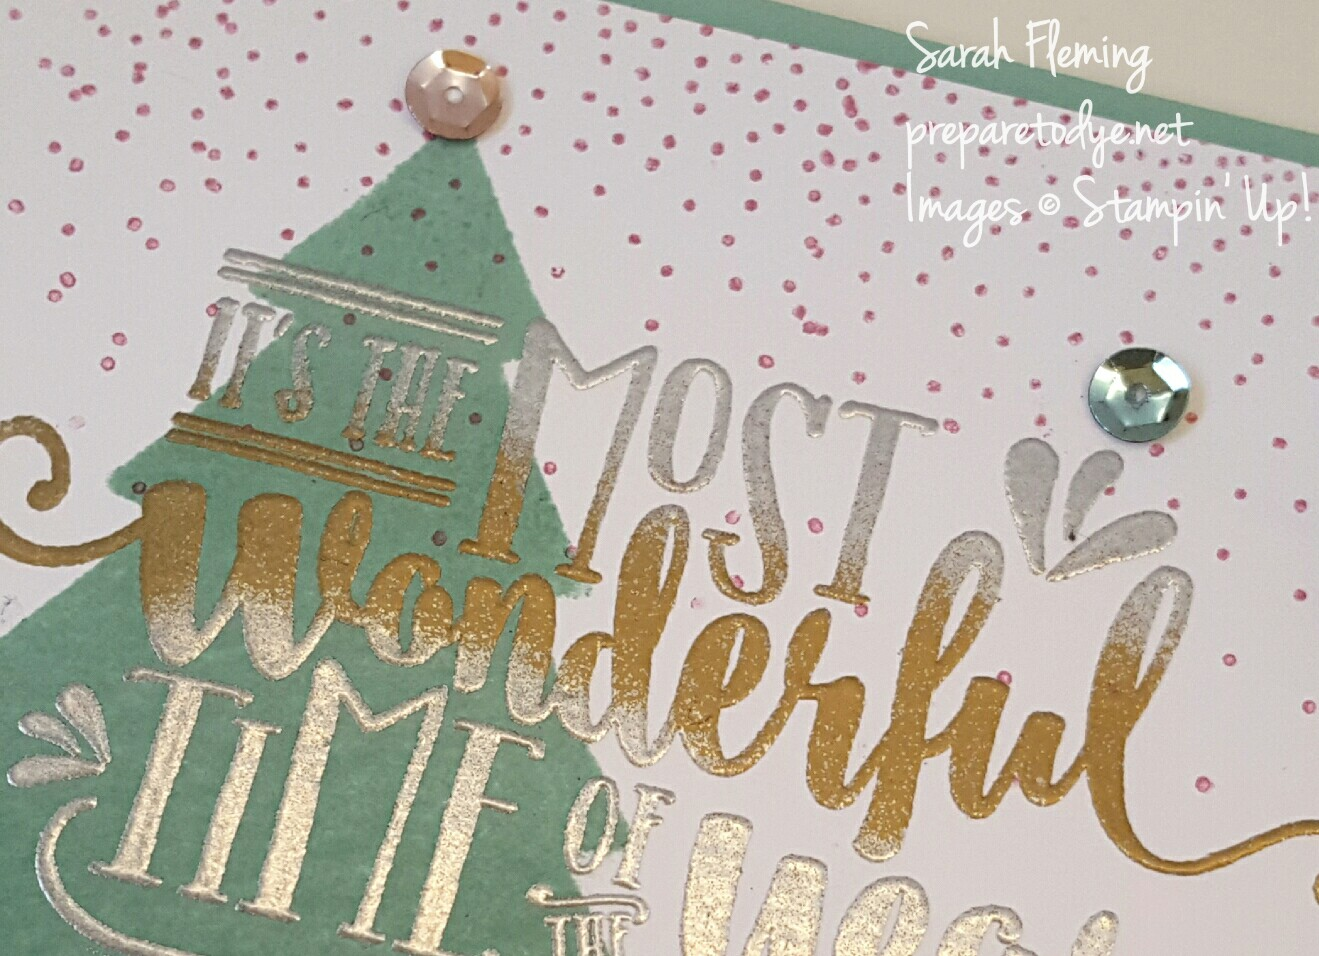 Two-tone embossing using Stampin' Up! Wonderful Year and Merriest Wishes stamps and Fancy Frost sequins. Sarah Fleming, Prepare to Dye Papercrafts - for Global Design Project #GDP056